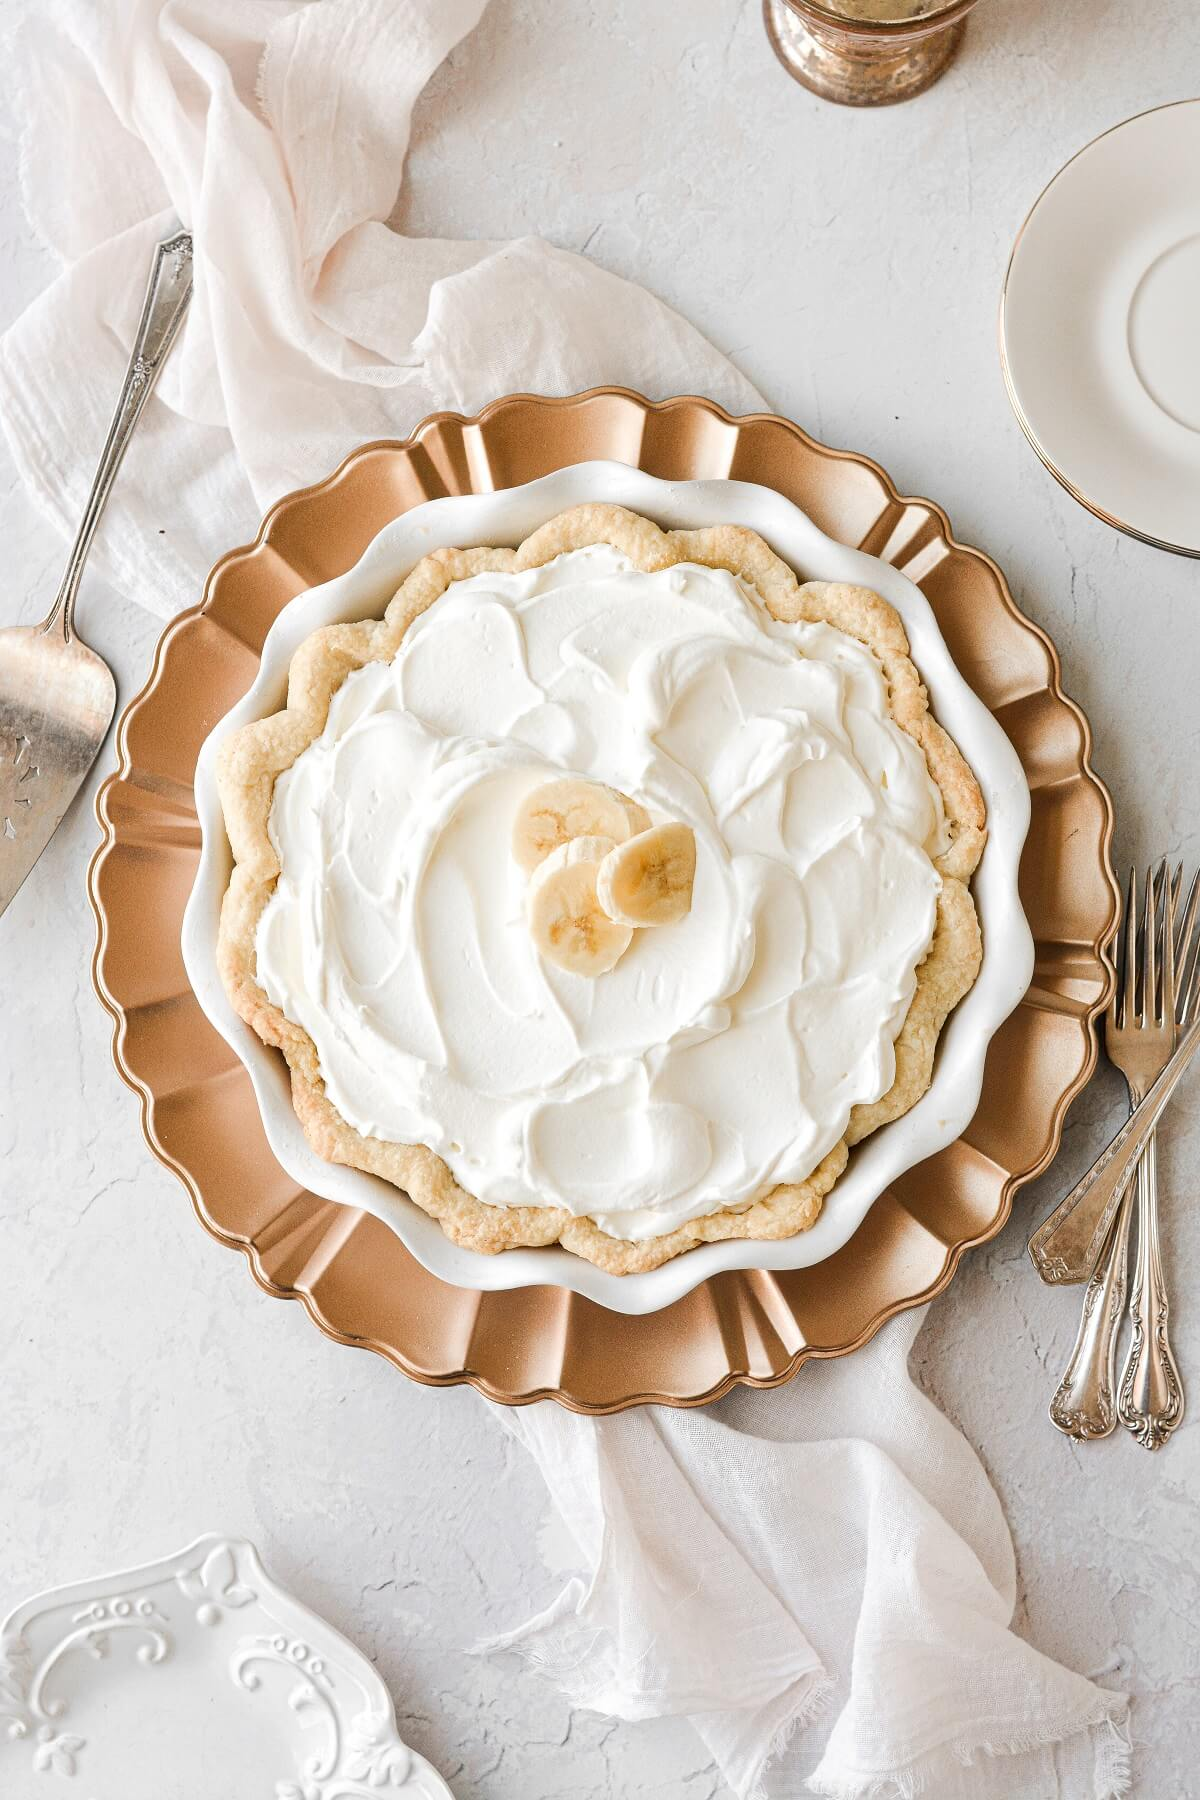 Banana cream pie, topped with whipped cream and sliced bananas.